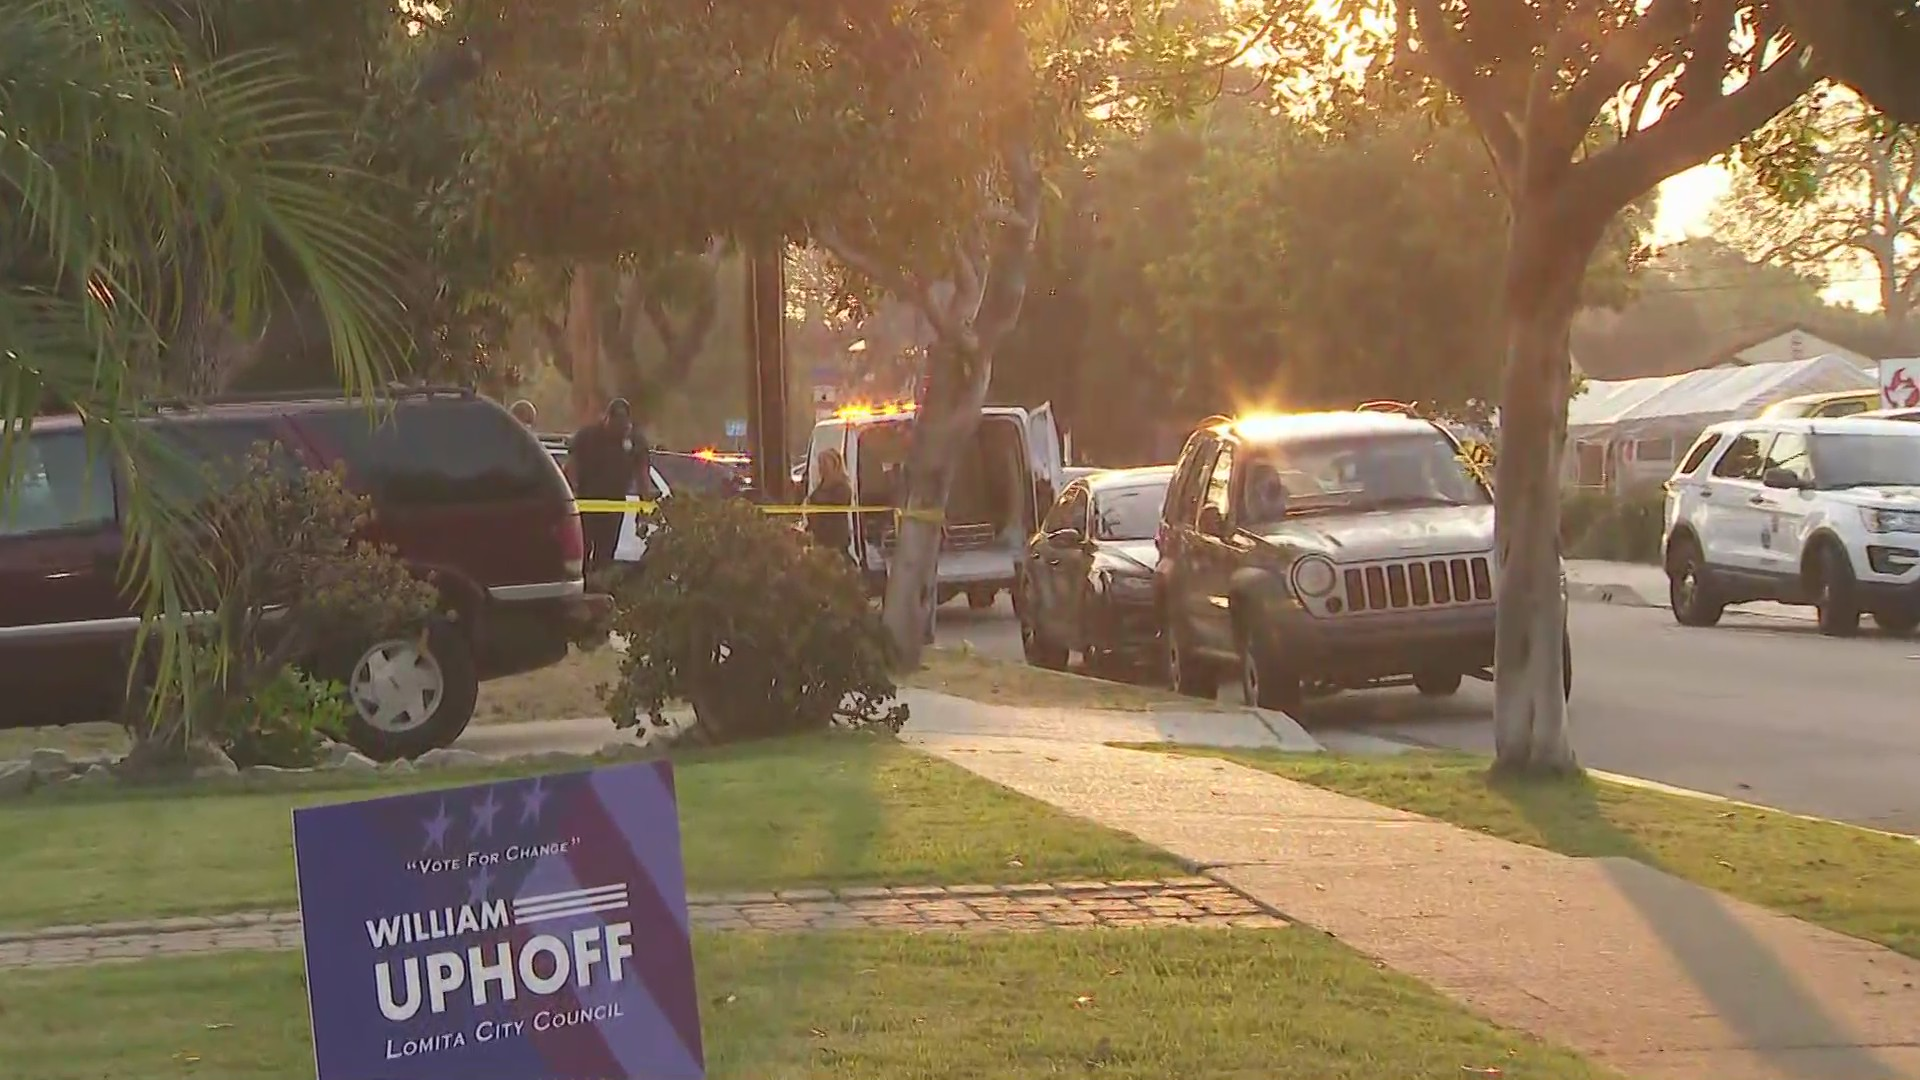 Authorities investigate the deadly shooting of two people in the 2100 block of 255th Street in Lomita on Oct. 4, 2020. (KTLA)